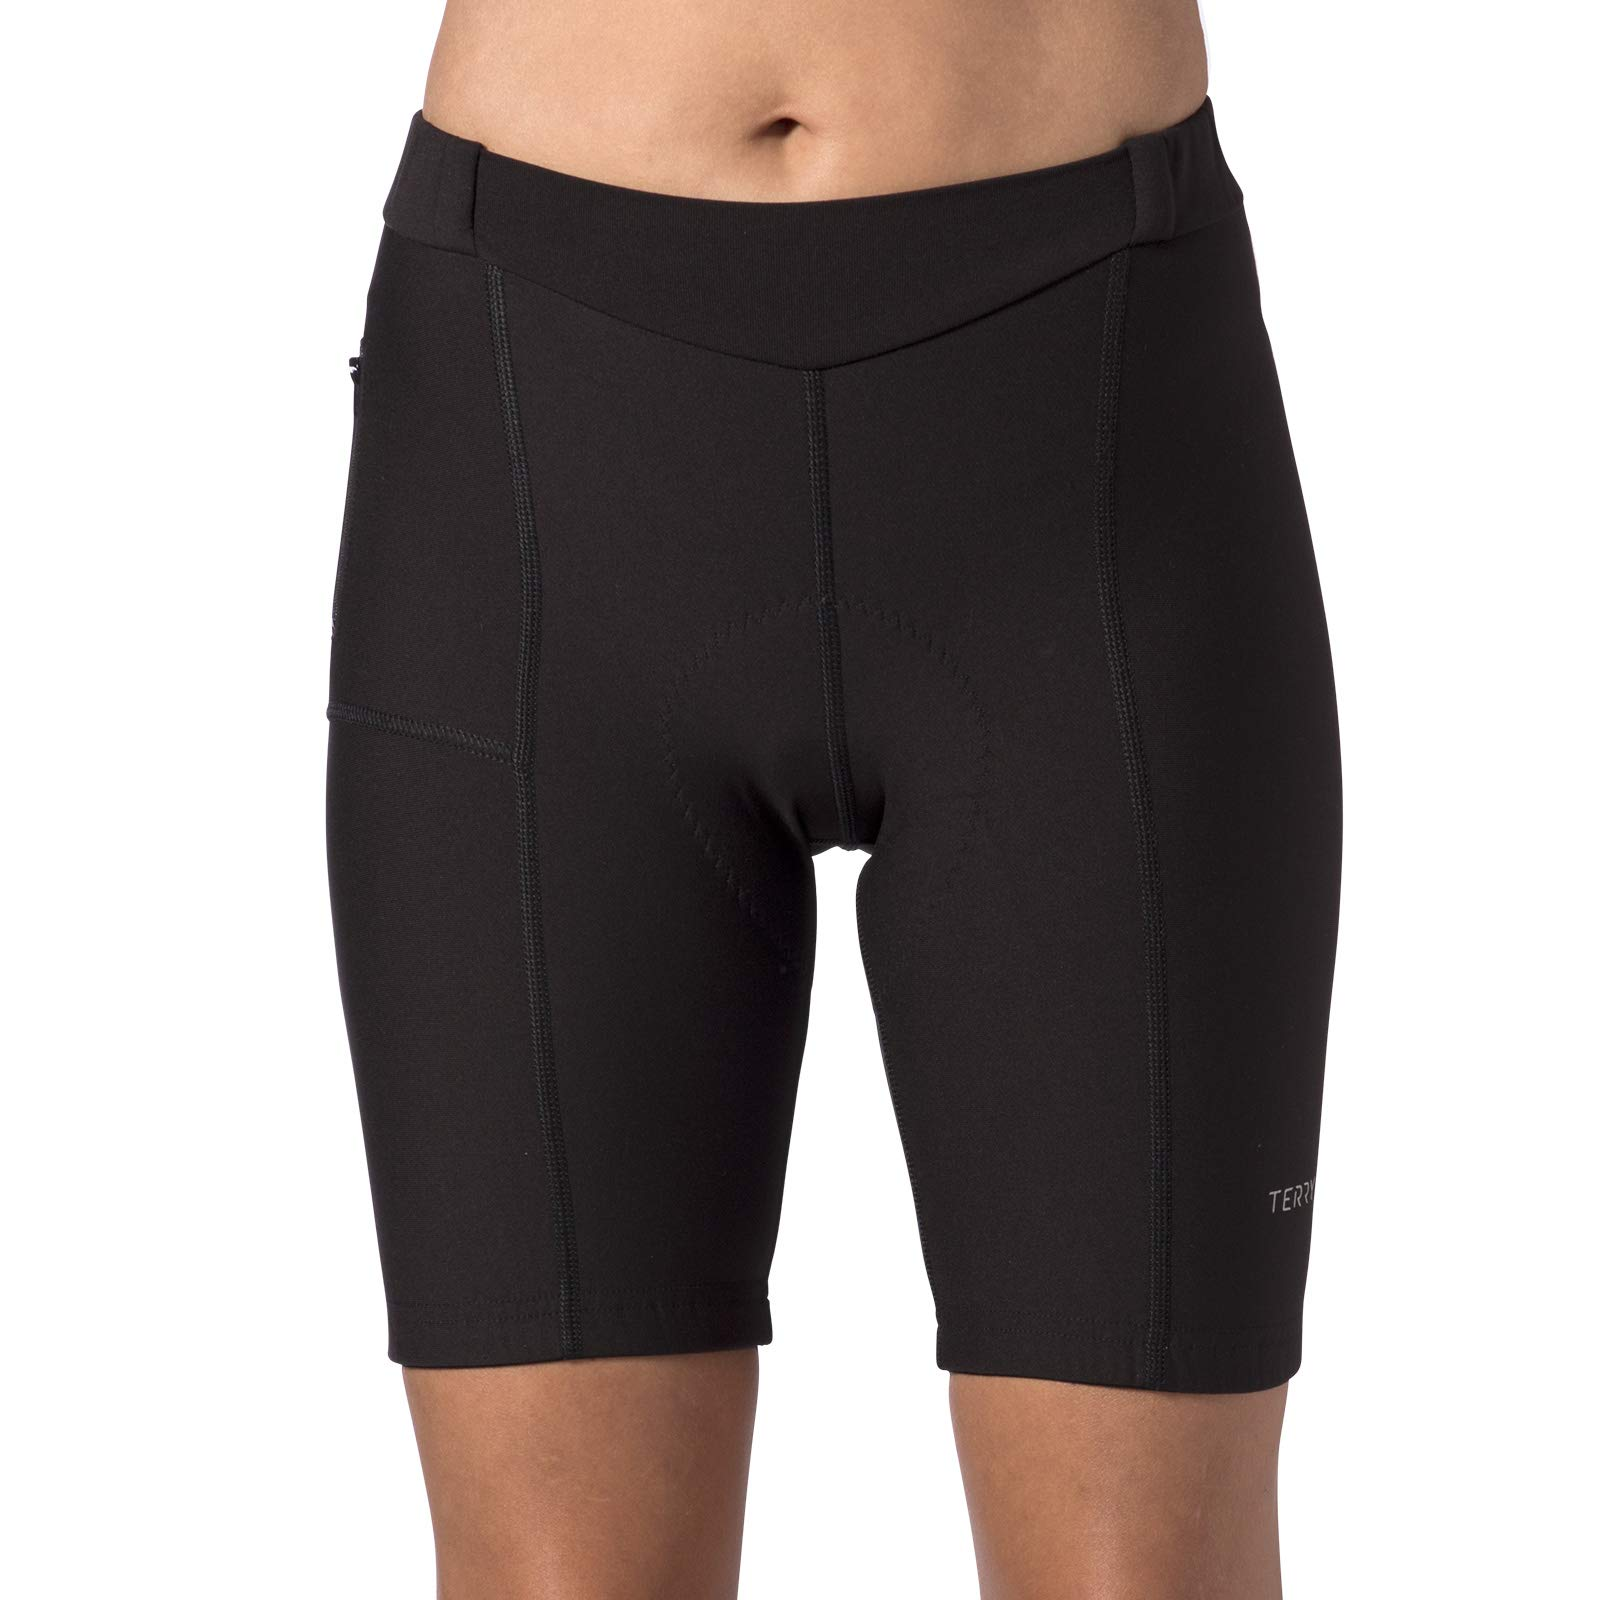 Terry Women's Touring Cycling Shorts/Regular - Best Padded Compression Multi-Day, Moisture-Wicking Cycling Shorts for Touring - Black - Large